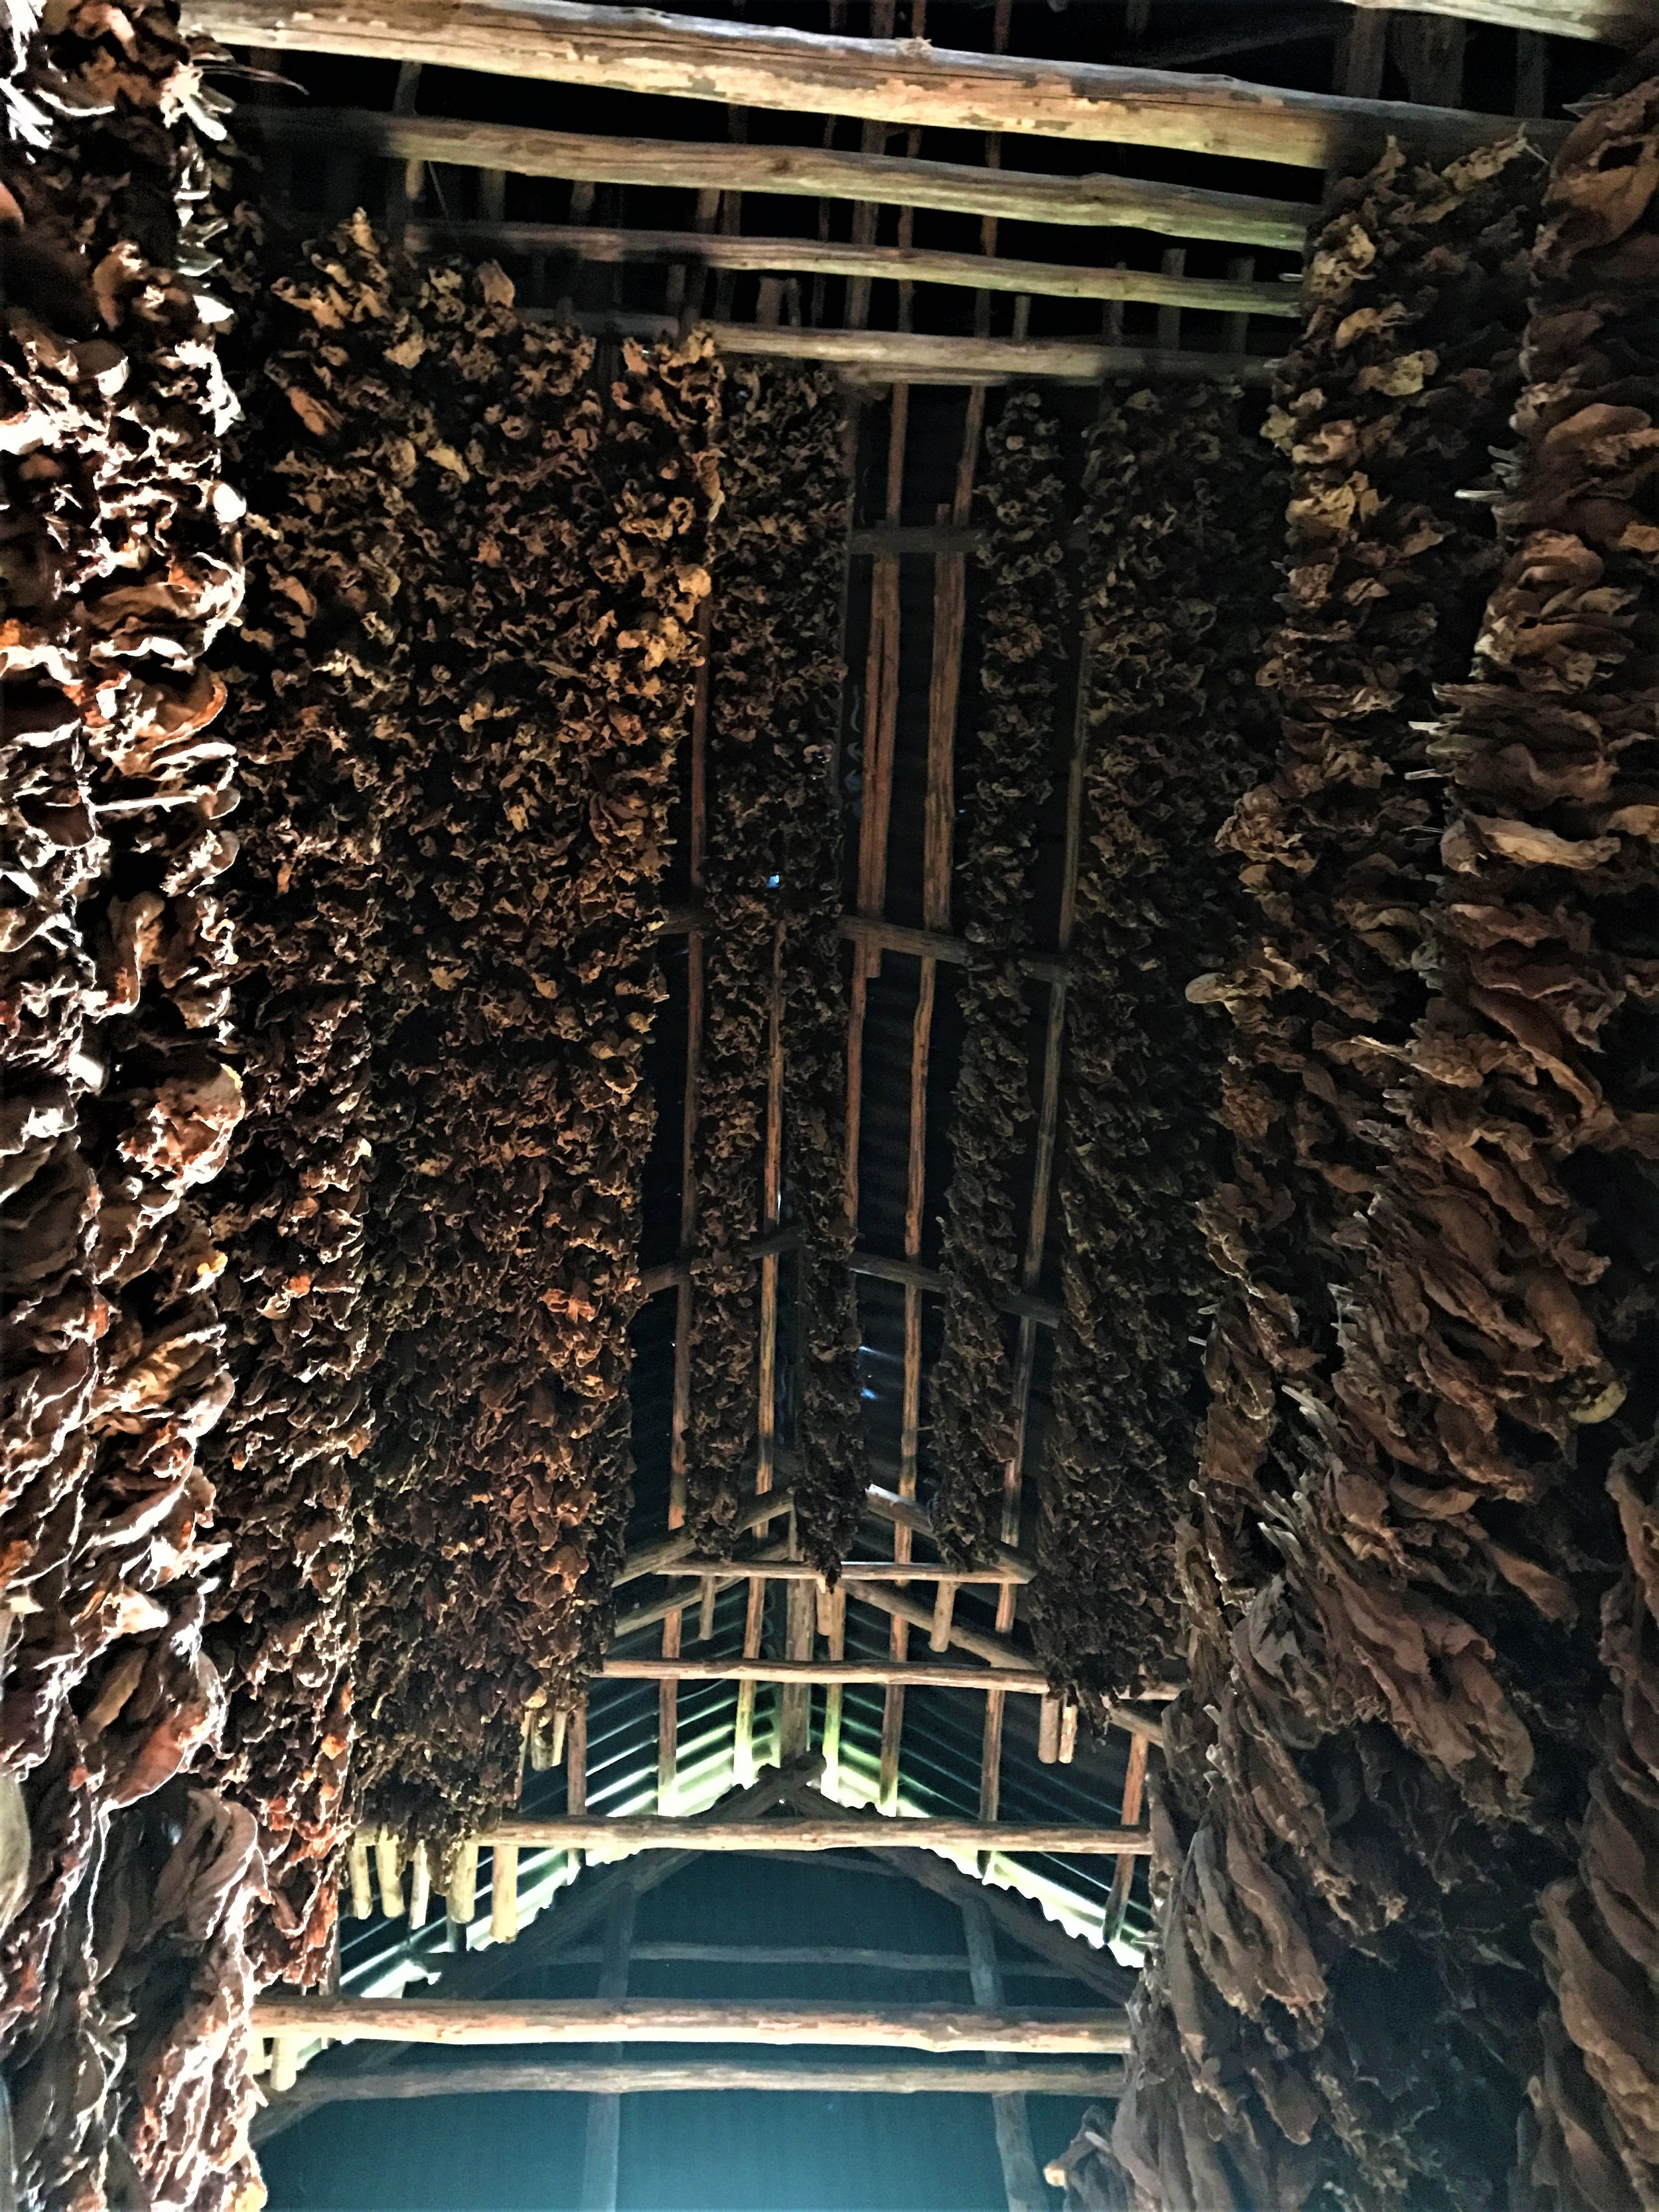 Taken inside a hut built specifically for dehydrating tobacco leaves.